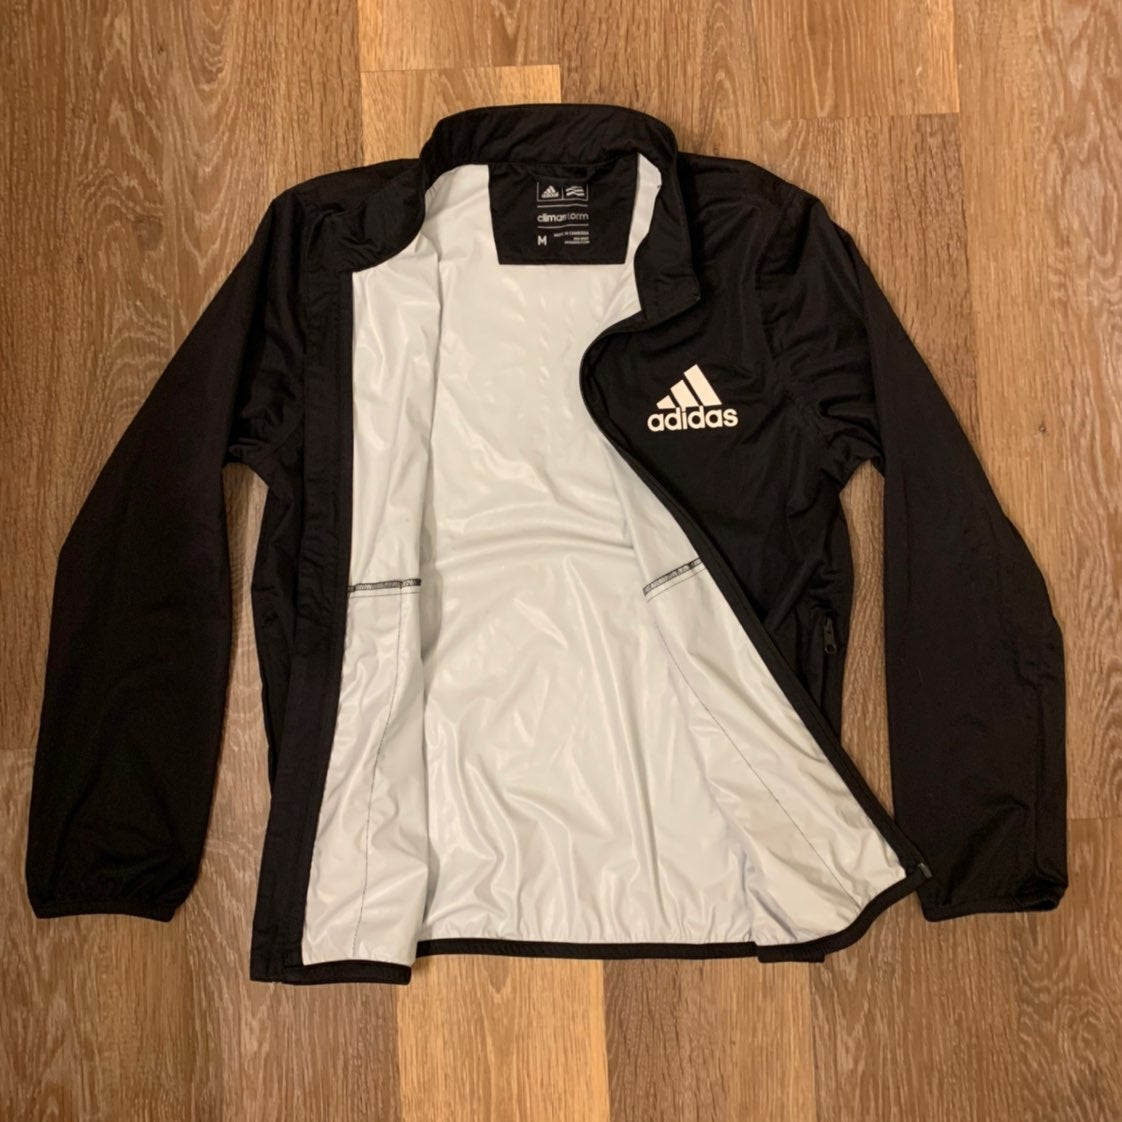 Adidas Climastorm Jacket Black Medium